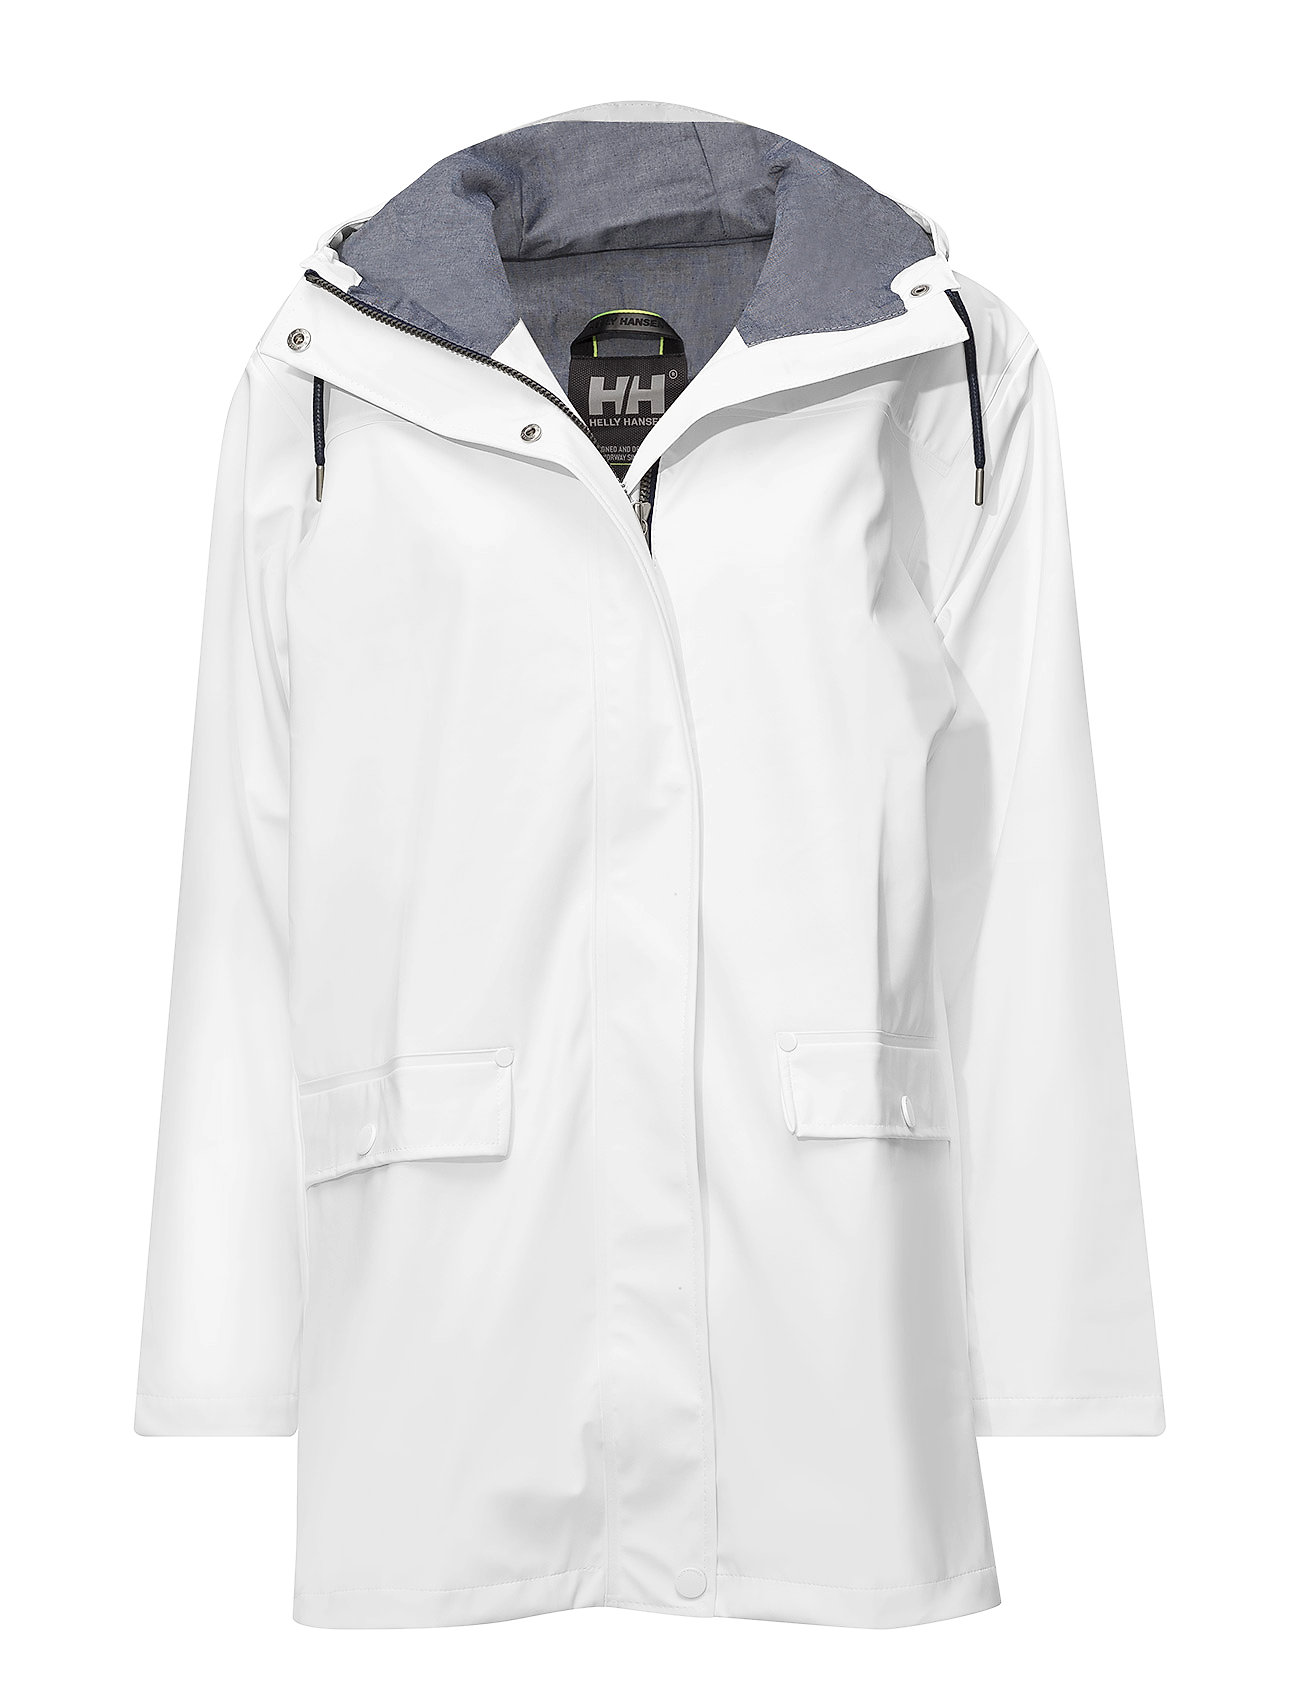 Helly Hansen W DUNLOE JACKET - 001 WHITE